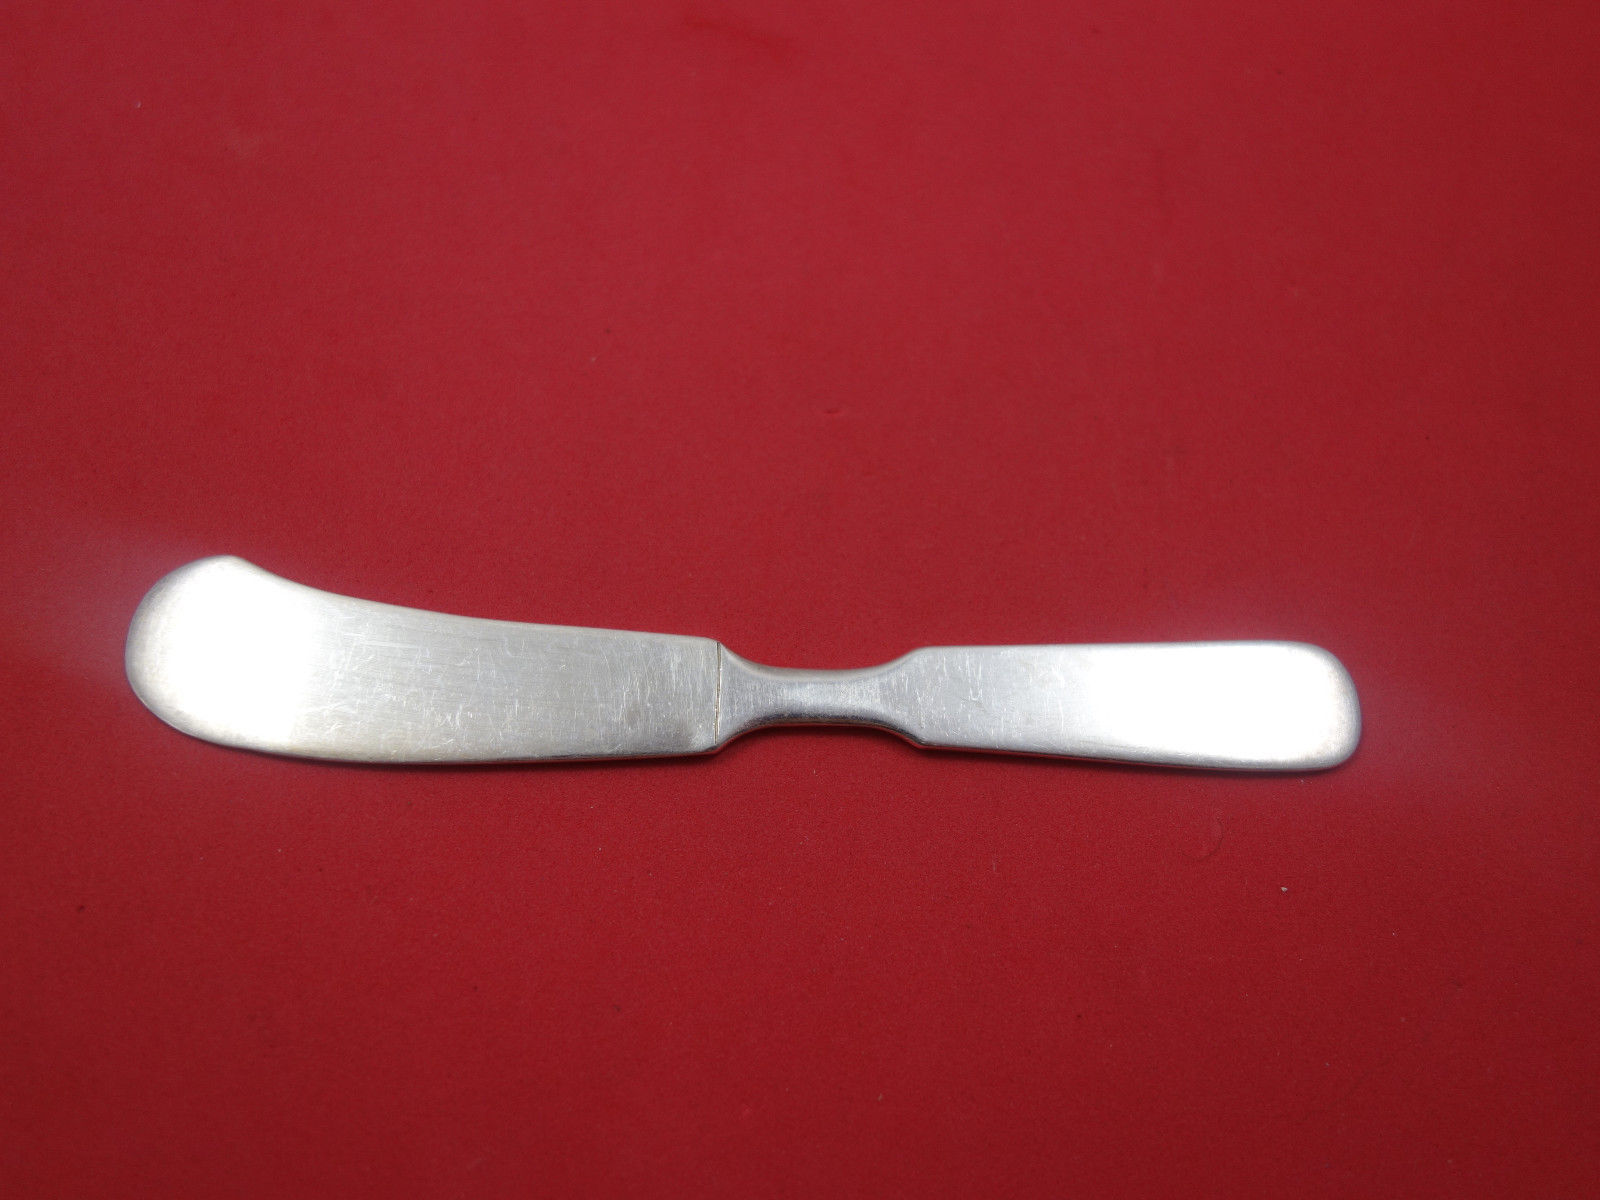 Chino by George Erickson Sterling Silver Butter Spreader Flat Handle 5 3/4""